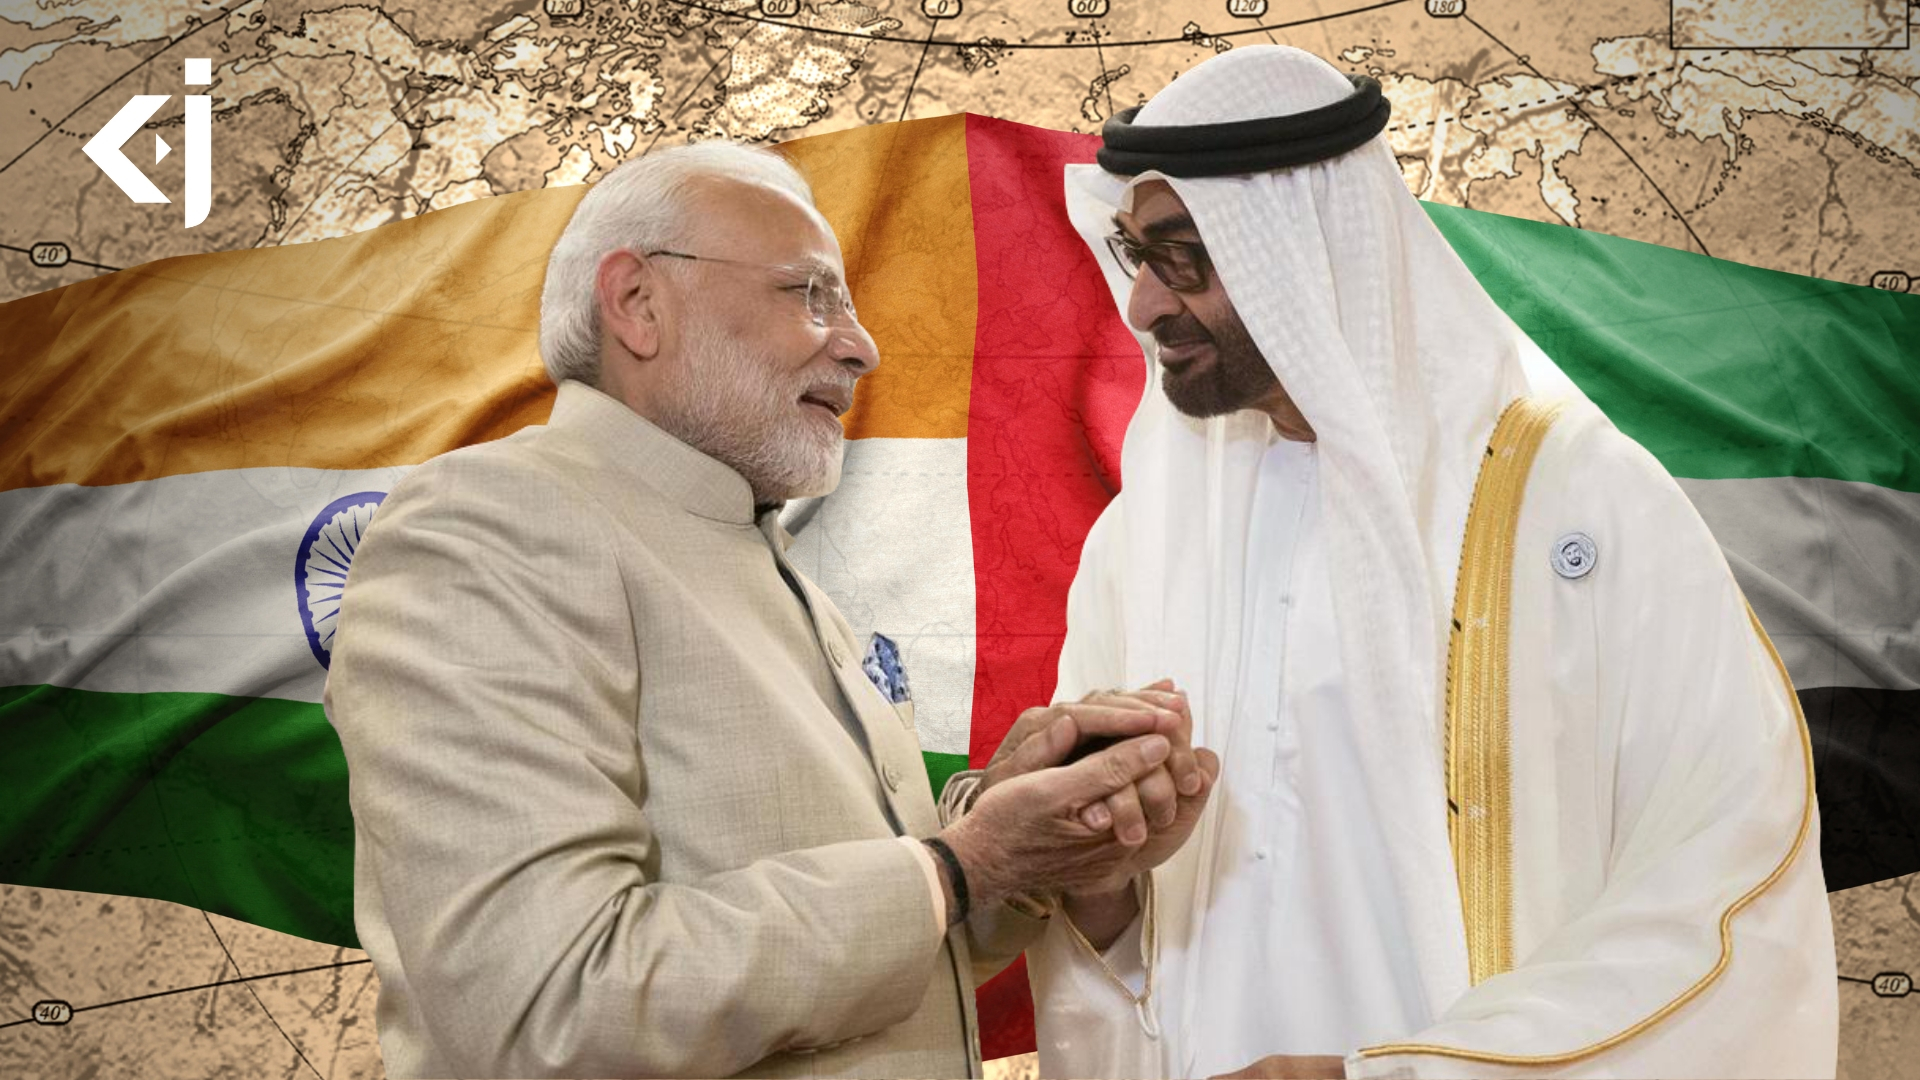 Are India and the UAE forming an unbreakable bond? 5 Geopolitical Effects You Need to Know